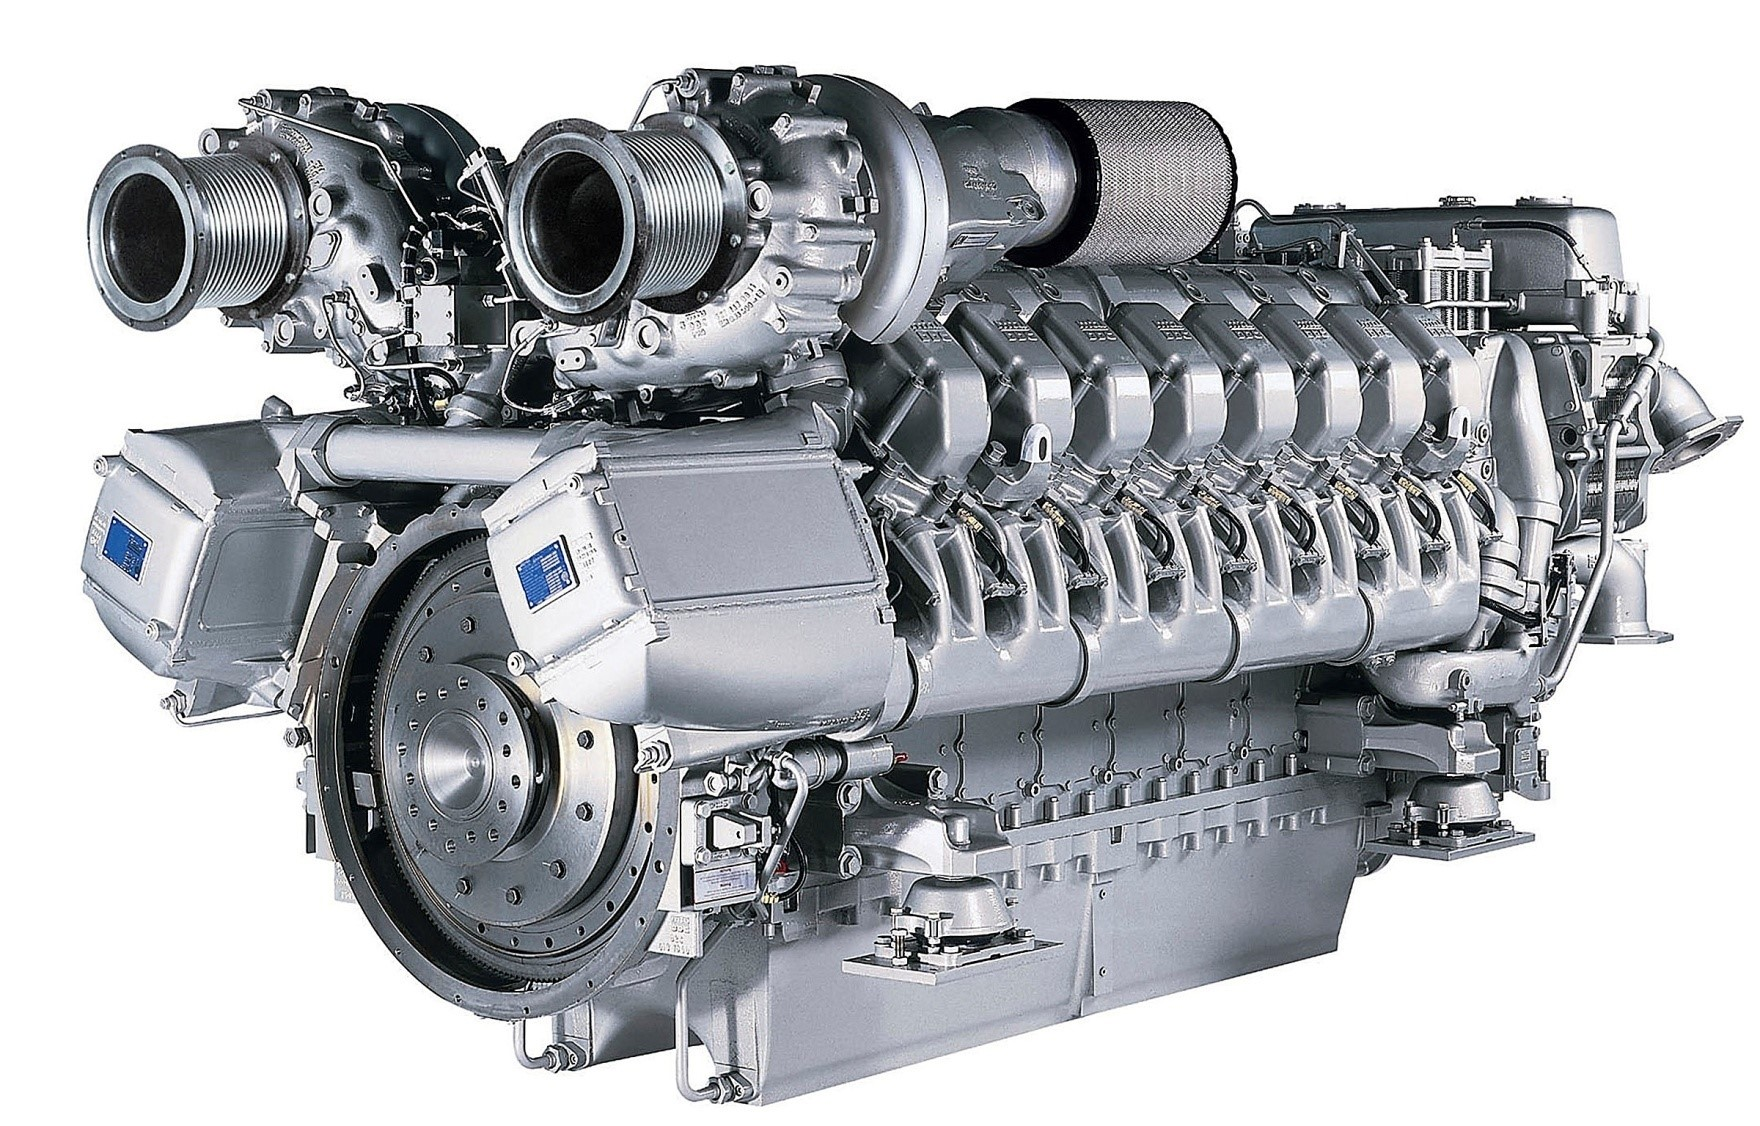 - MTU Series 4000The most impressive Technological Diesel engine made from the MTU factory.We are very proud to have completed services and for providing exceptional maintenance schedules for this engine series for pleasure craft, commercial passenger ferries and for commercial work boats, tugs, and tractors tugs in California & Hawaii (USA), as well as Rio de Janeiro & Macae, Brazil.